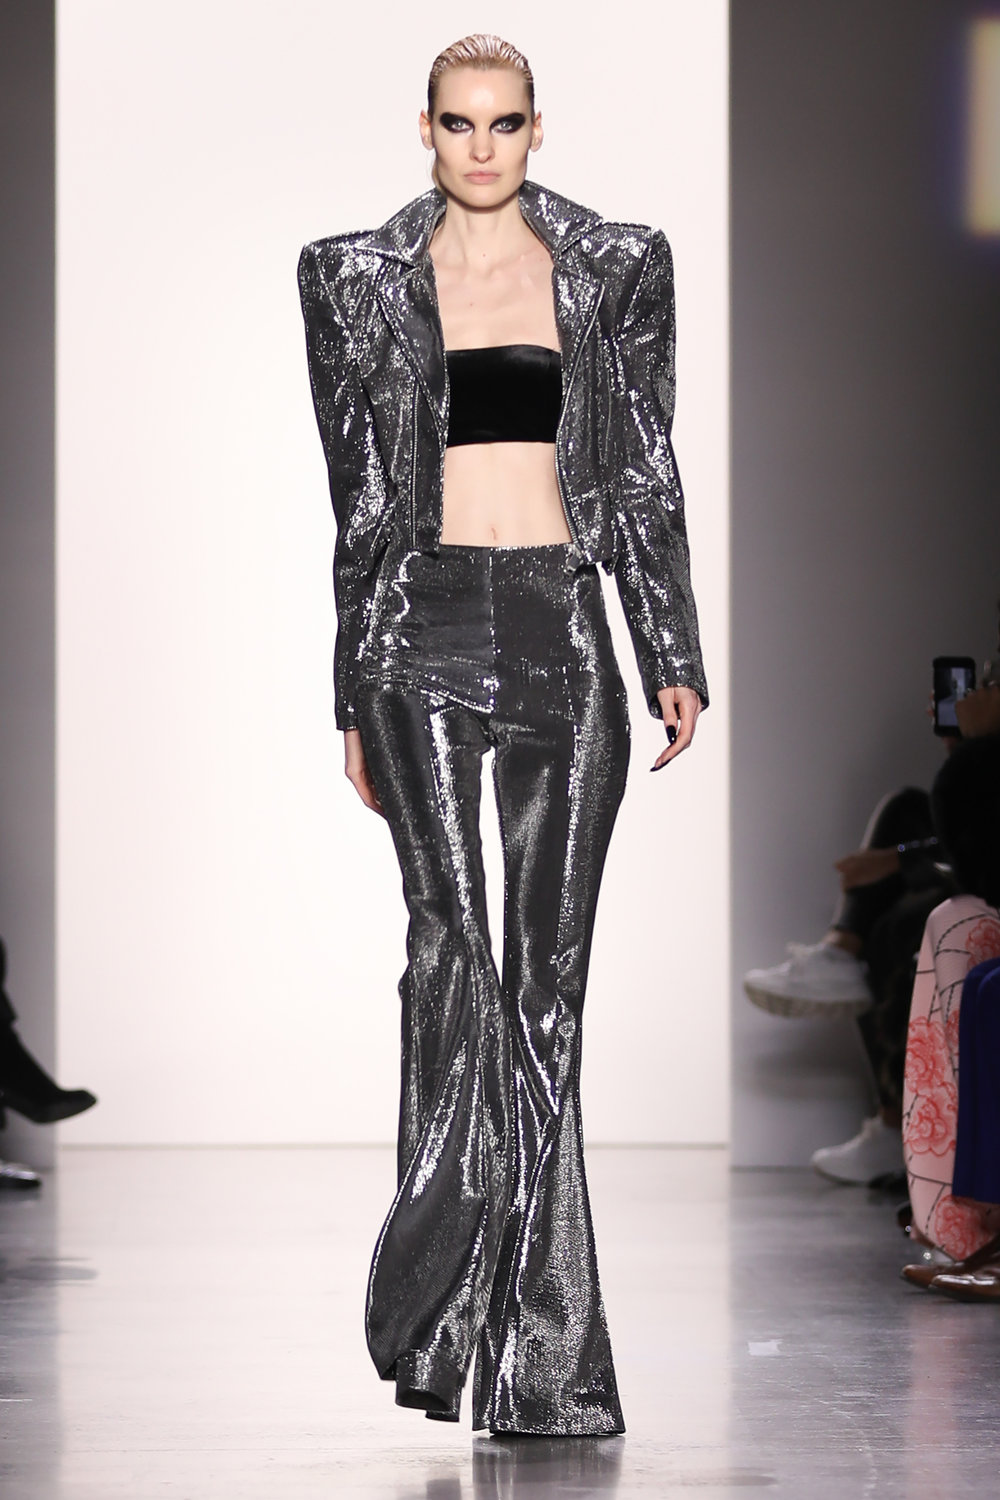 Hakan-Akkaya-NYFW-Fall-2019-03-300dpi-Photo-Credit-Elvia-Gobbo.jpg